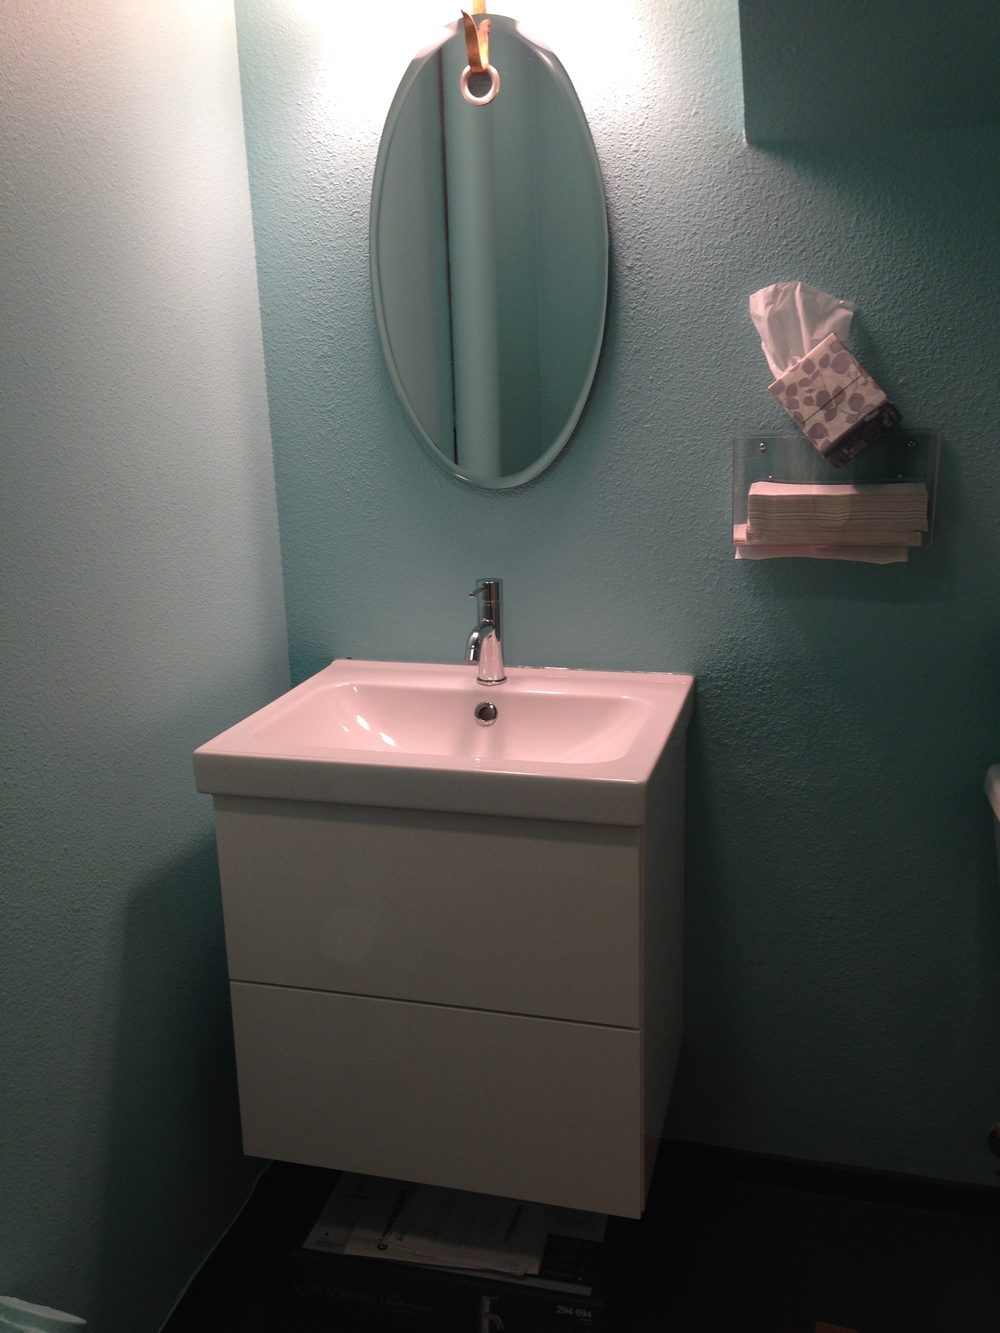 Floating Cabinet with new Faucet